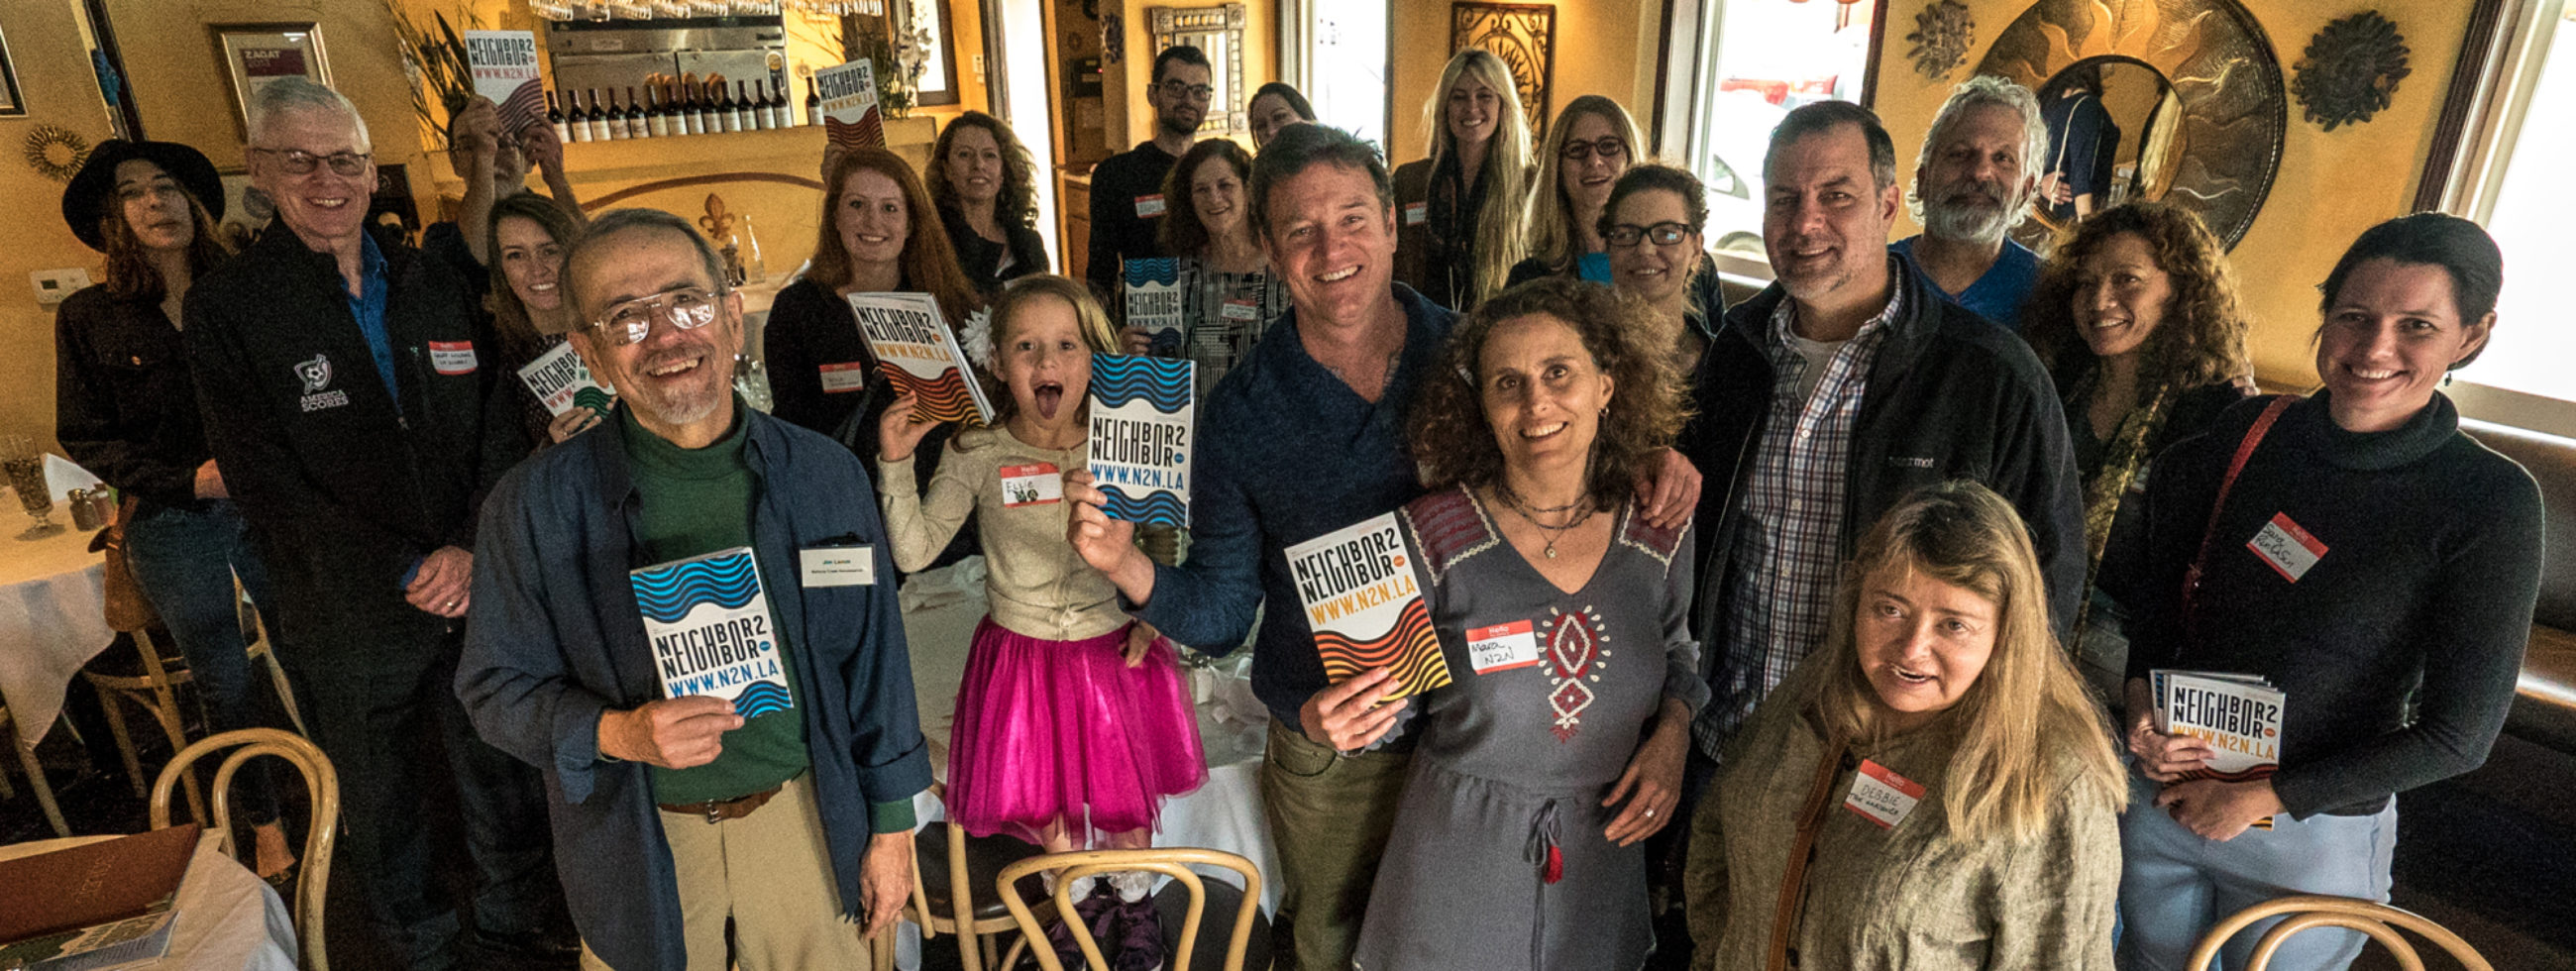 Handpicked business owners and nonprofit directors at the 2018 Neighbor2Neighbor launch party at Soleil French Restaurant in Westwood